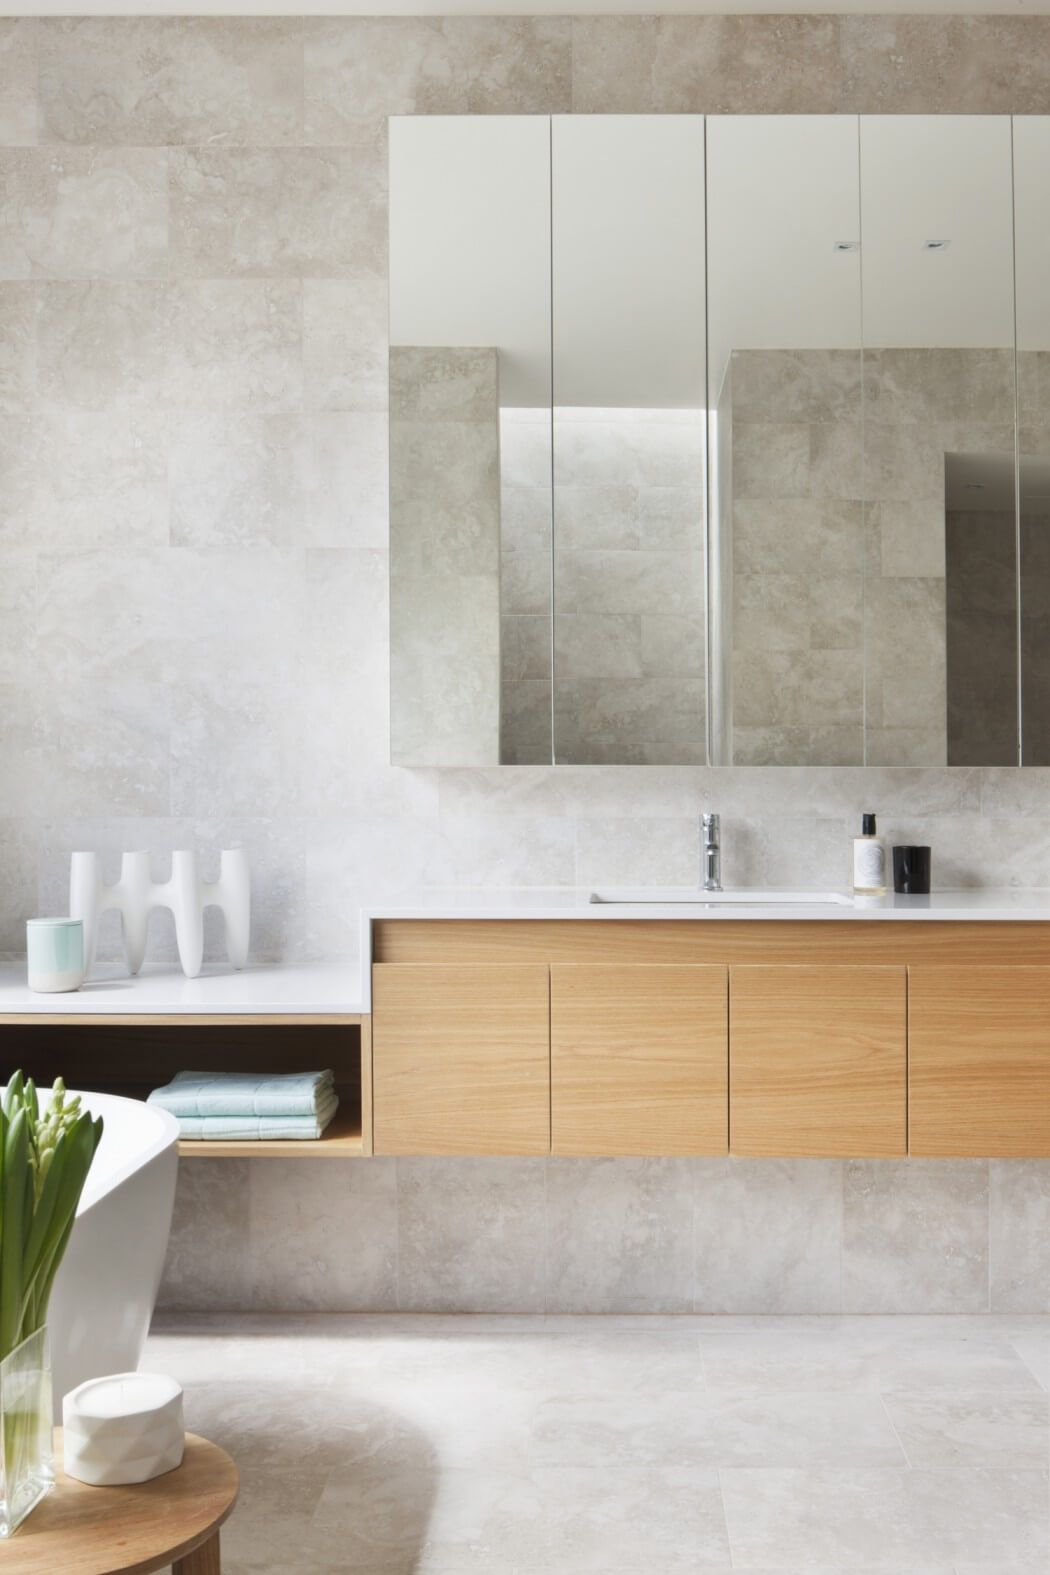 Best Photo Gallery For Website Glorious Floating White Acrylic Bathroom Vanities Ikea With Single Undermount Sink Added Cabinets Designs In Modern White Bathroom Ideas